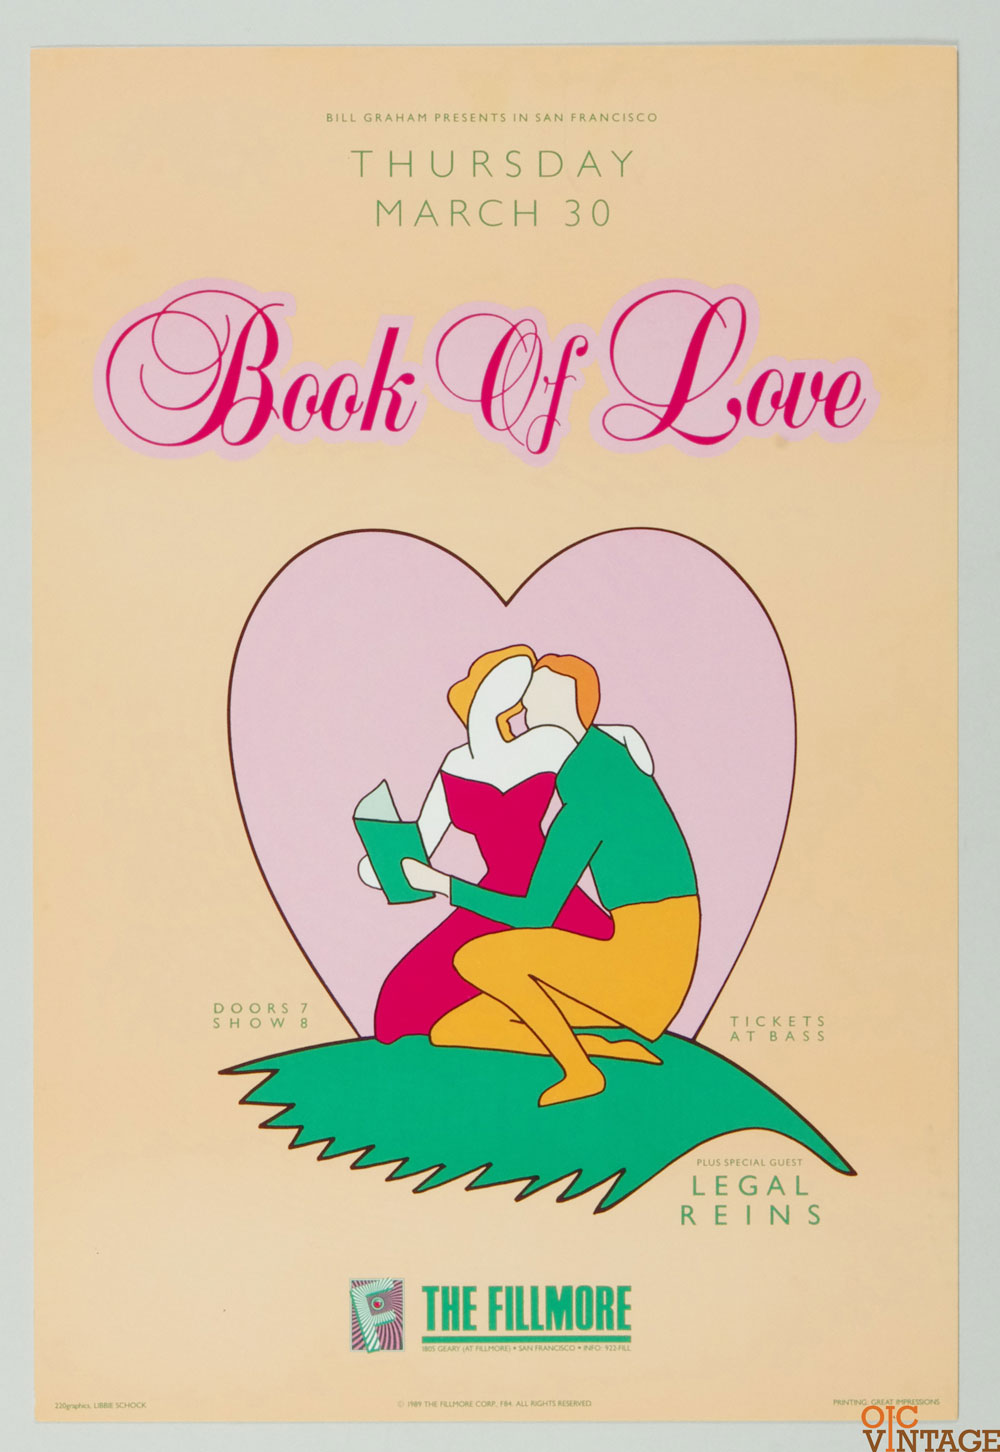 Book of Love Poster 1989 Mar 30 New Fillmore